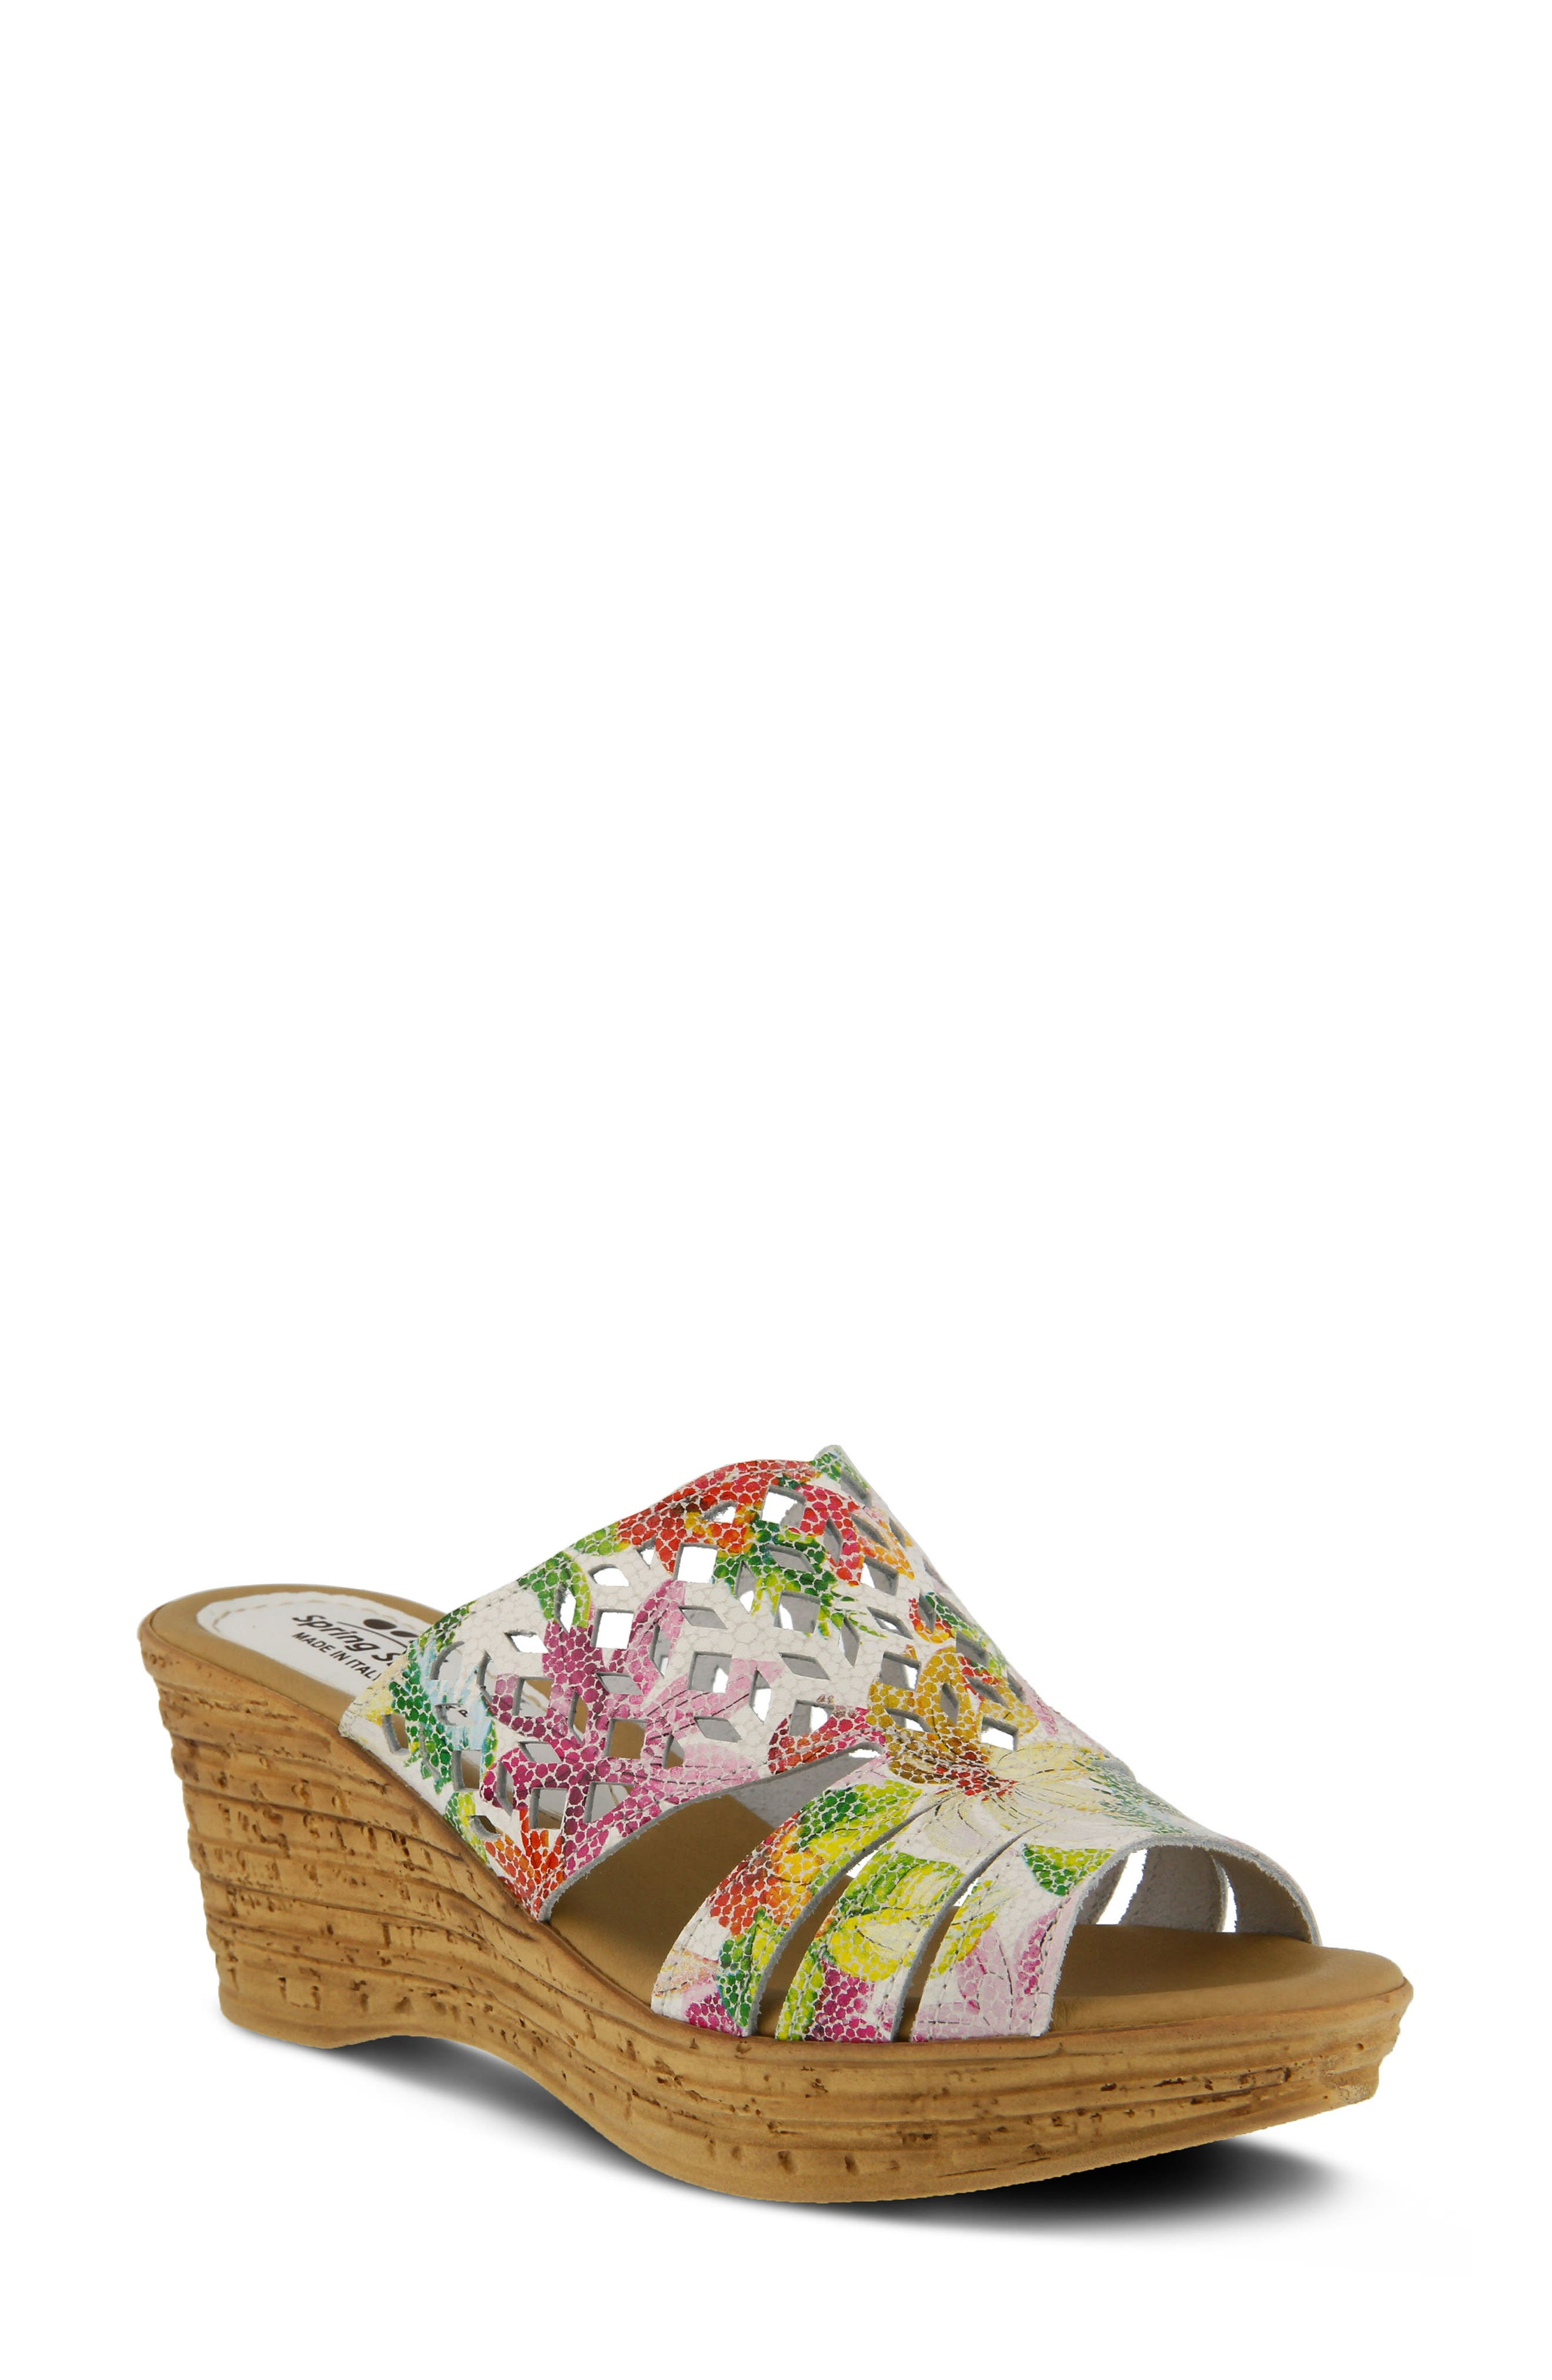 SPRING STEP, Viniko Platform Wedge Sandal, Main thumbnail 1, color, WHITE LEATHER